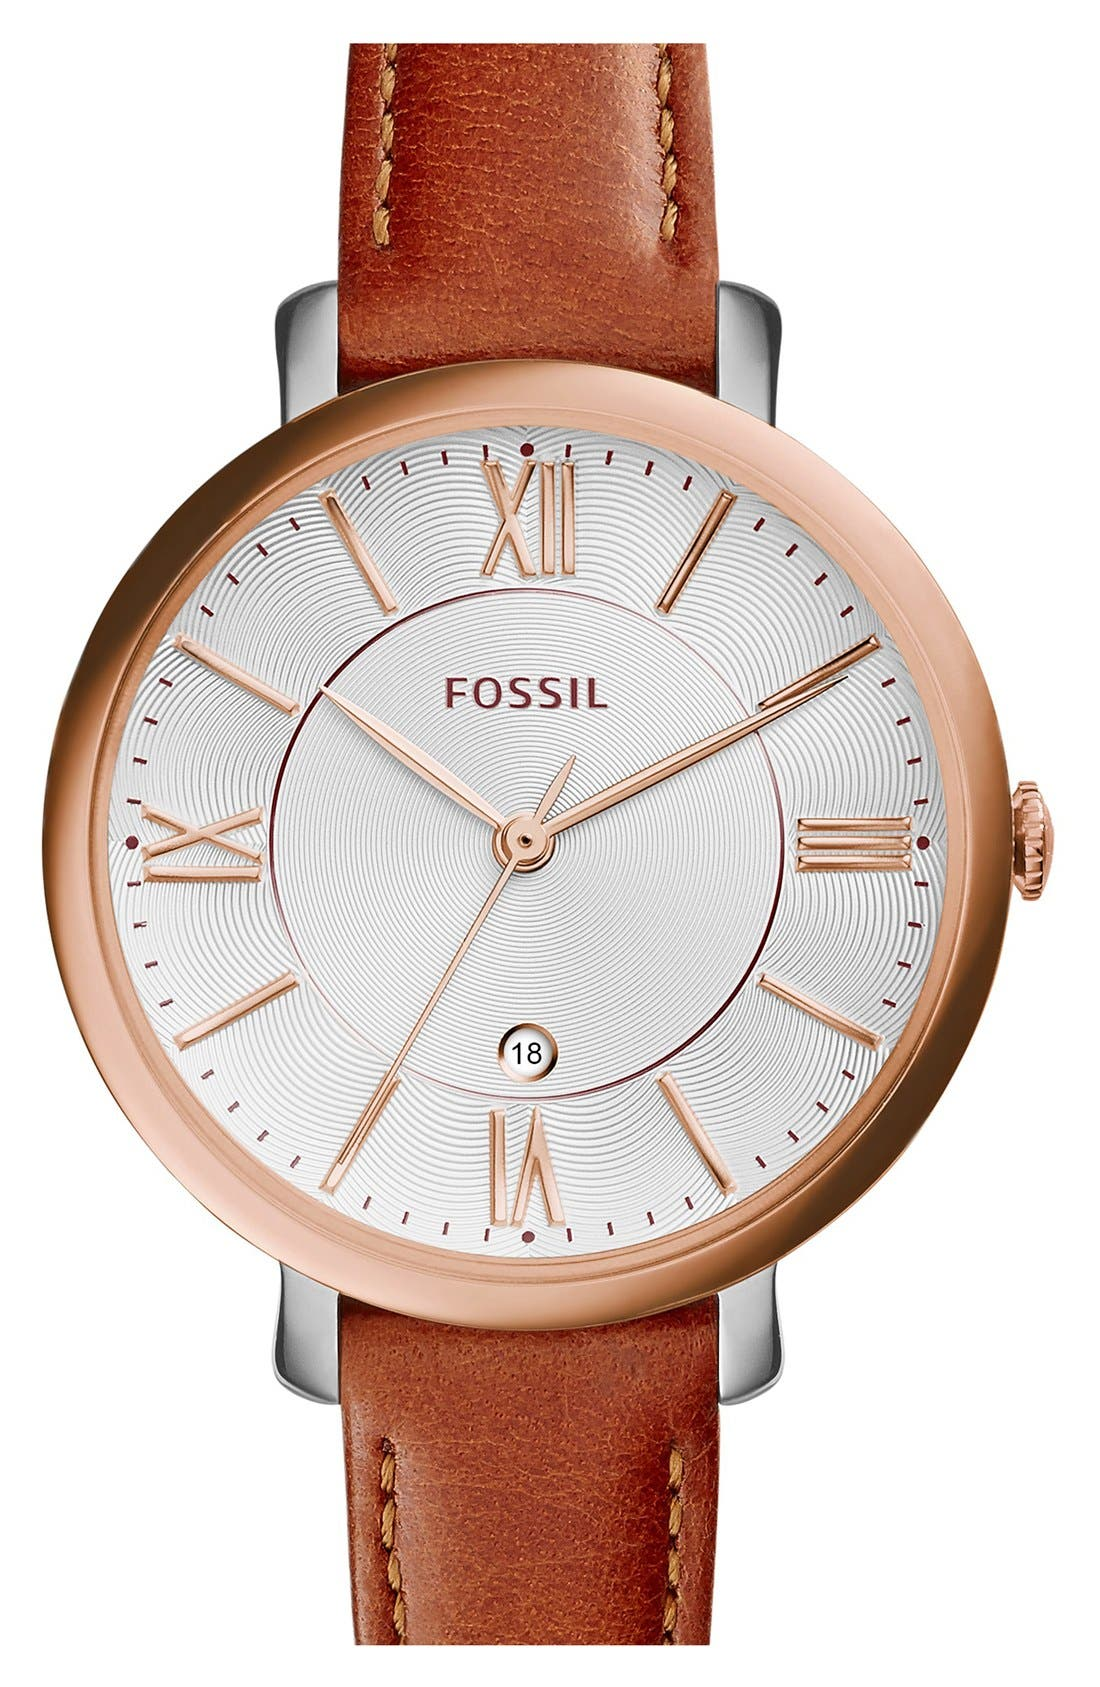 Fossil Watches 'Jacqueline' Round Leather Strap Watch, 36mm